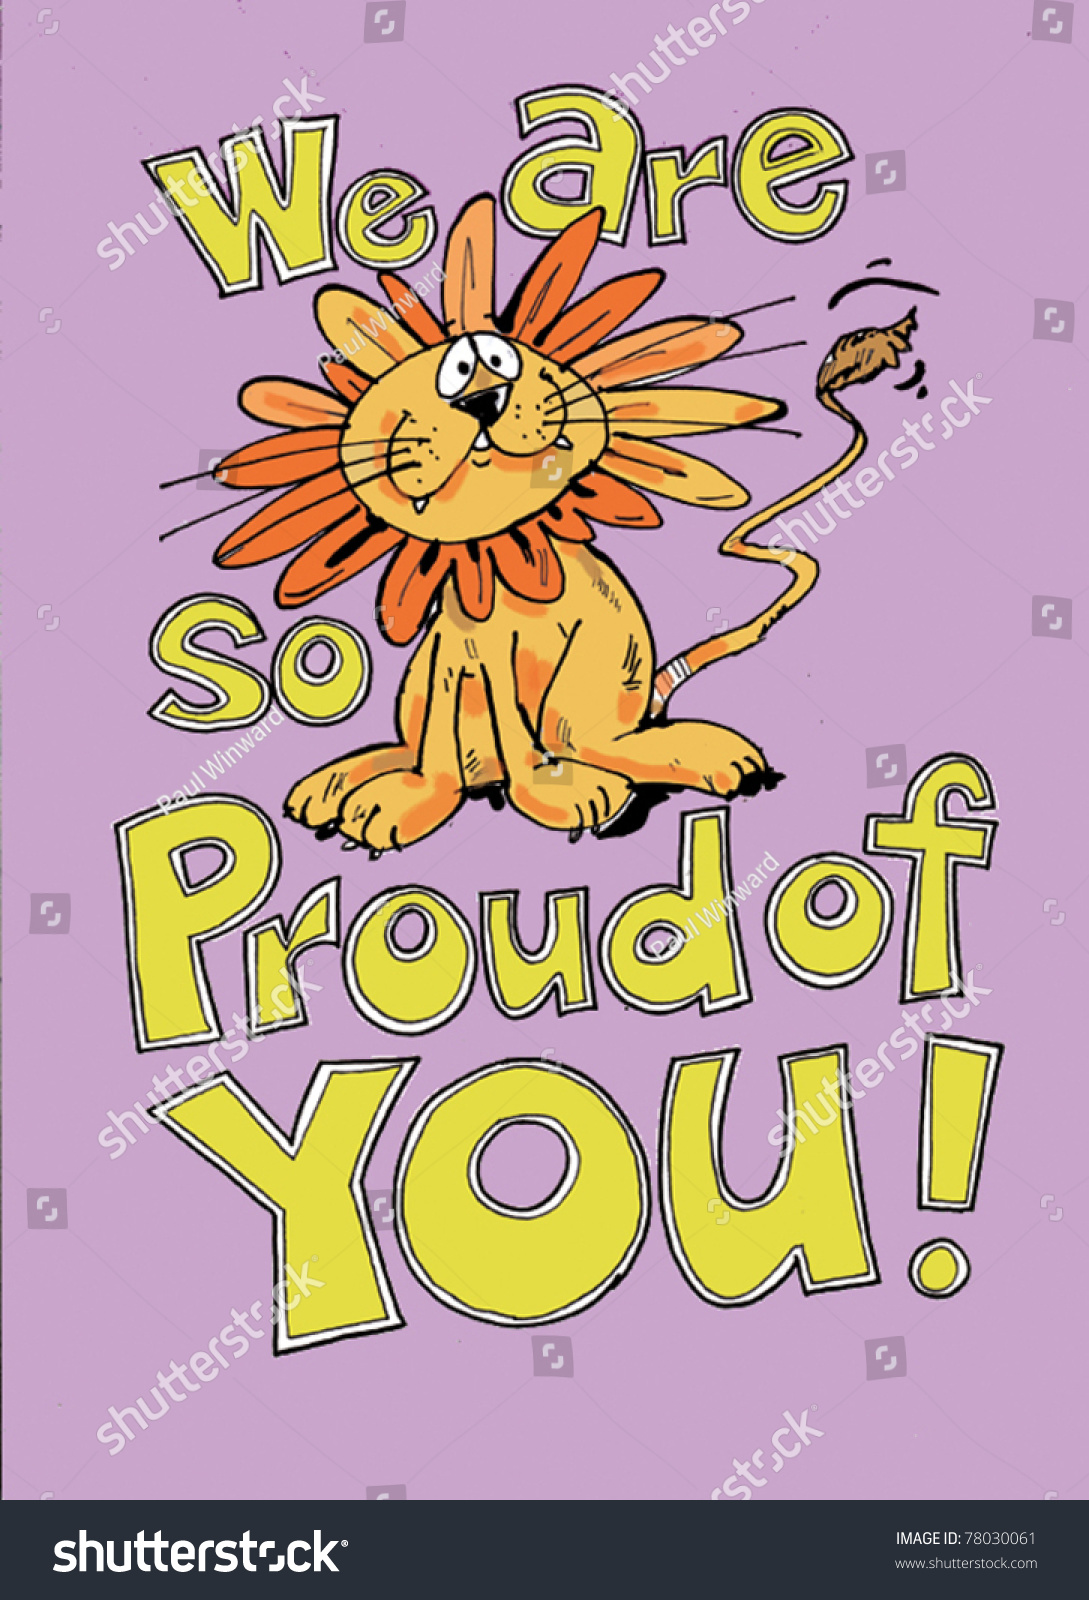 We Are So Proud Of You! Stock Vector Illustration 78030061 : Shutterstock